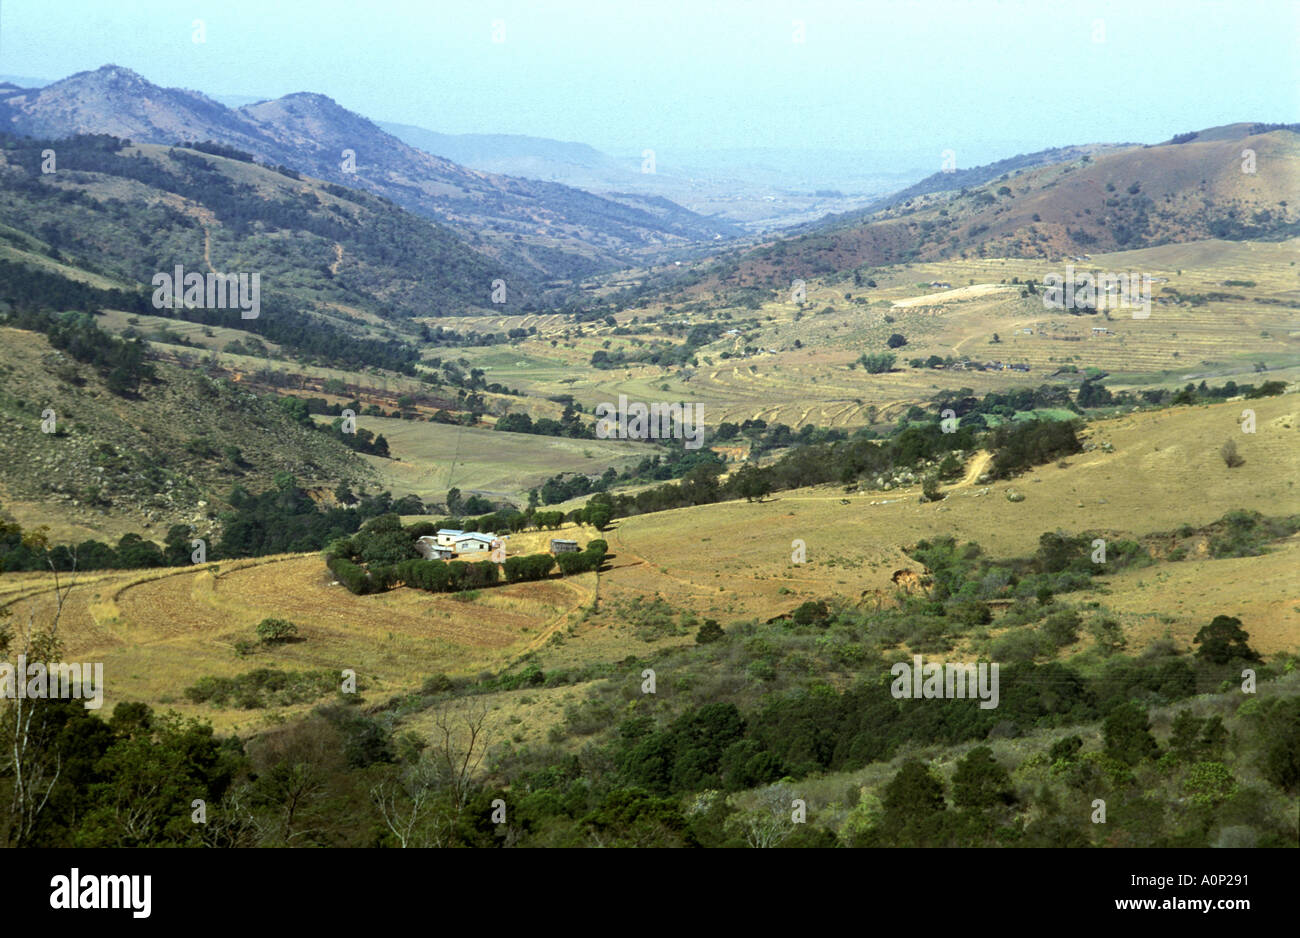 A small modern farm overlooking a valley in the hilly countryside south of Mbabane Swaziland southern Africa - Stock Image